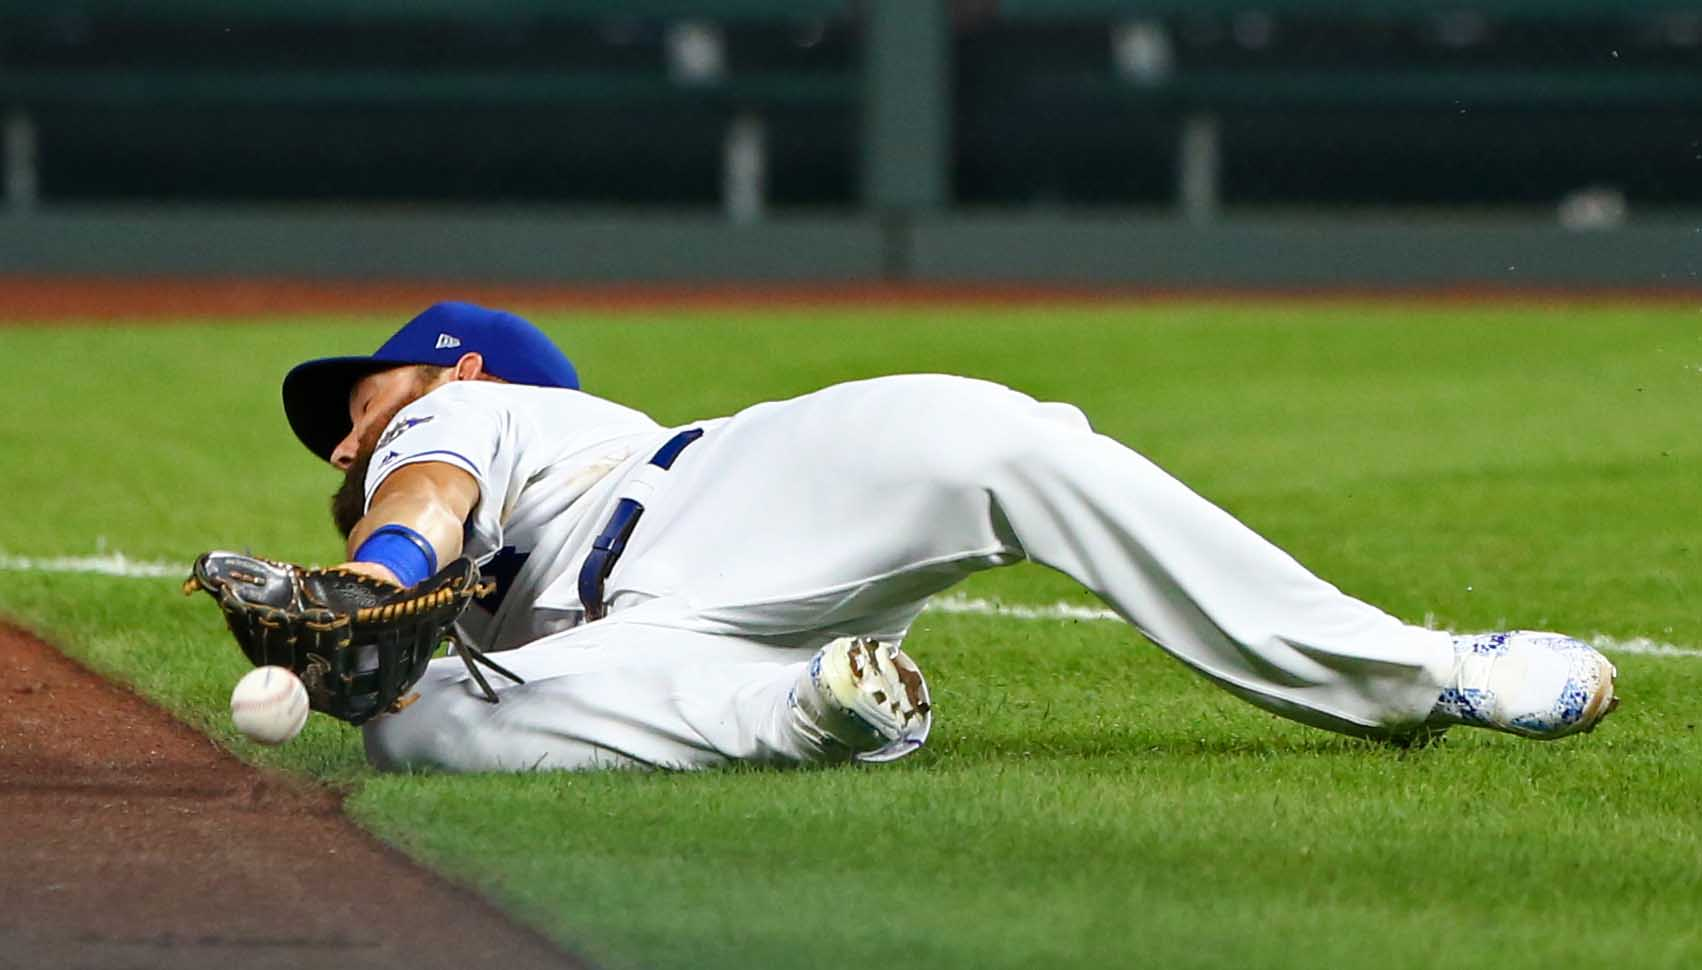 Aug 8, 2018; Kansas City, MO, USA; Kansas City Royals left fielder Alex Gordon (4) is unable to make the catch in the fifth inning against the Chicago Cubs at Kauffman Stadium. Mandatory Credit: Jay Biggerstaff-USA TODAY Sports